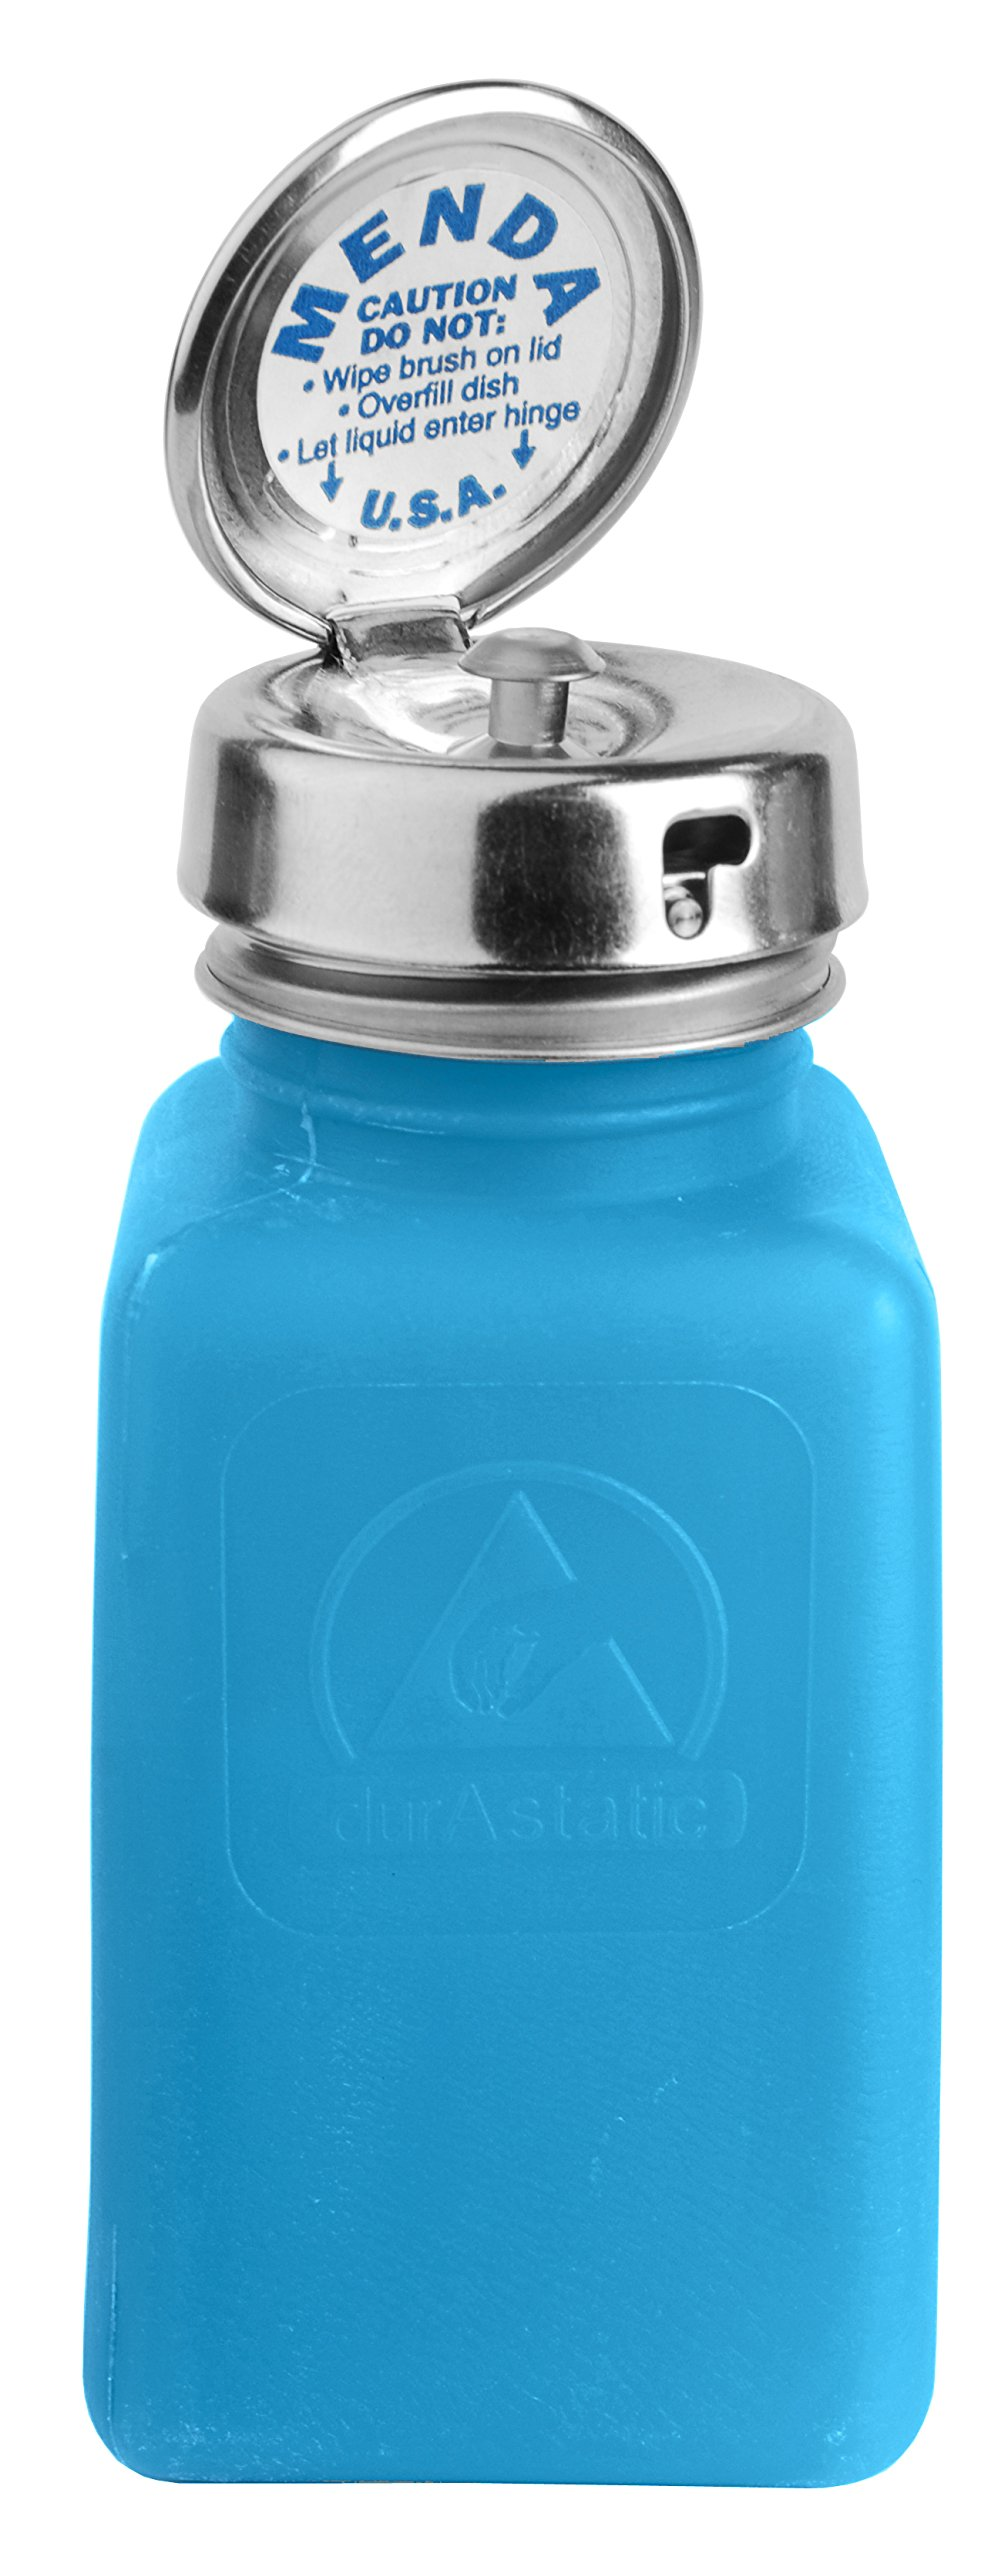 Menda 35286 Pure Take Locking Liquid Dispenser Pump Bottle, ESD Safe, 6 oz. Dissipative, HDPE/Stainless Steel, Blue